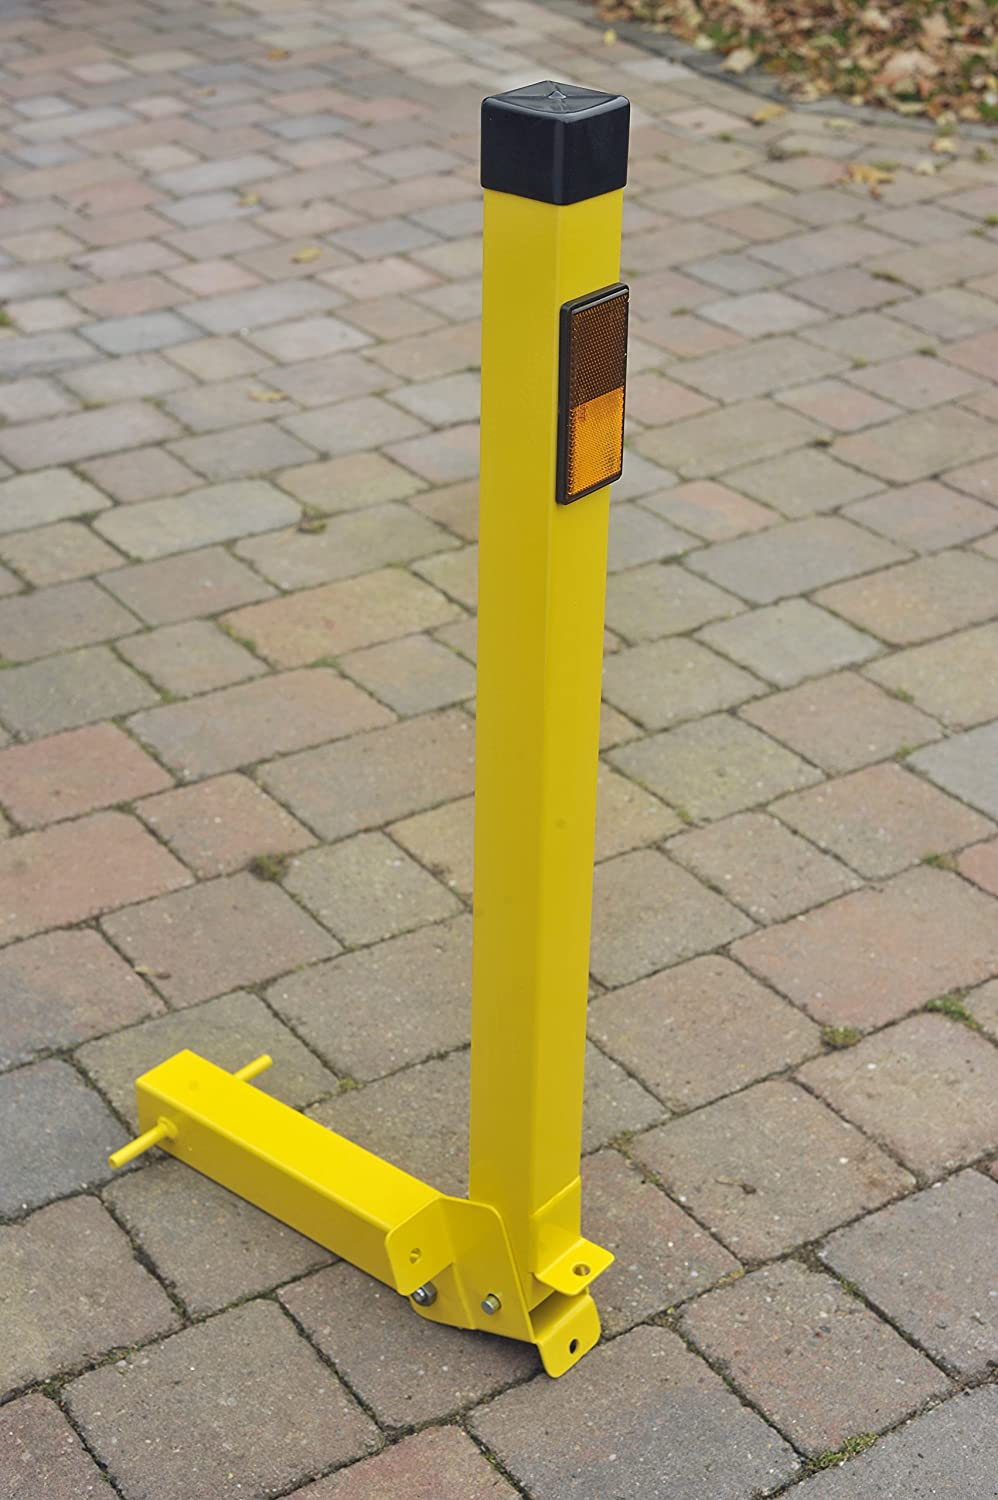 Parking Post by Avonstar Classics Padlock with Concrete Mount